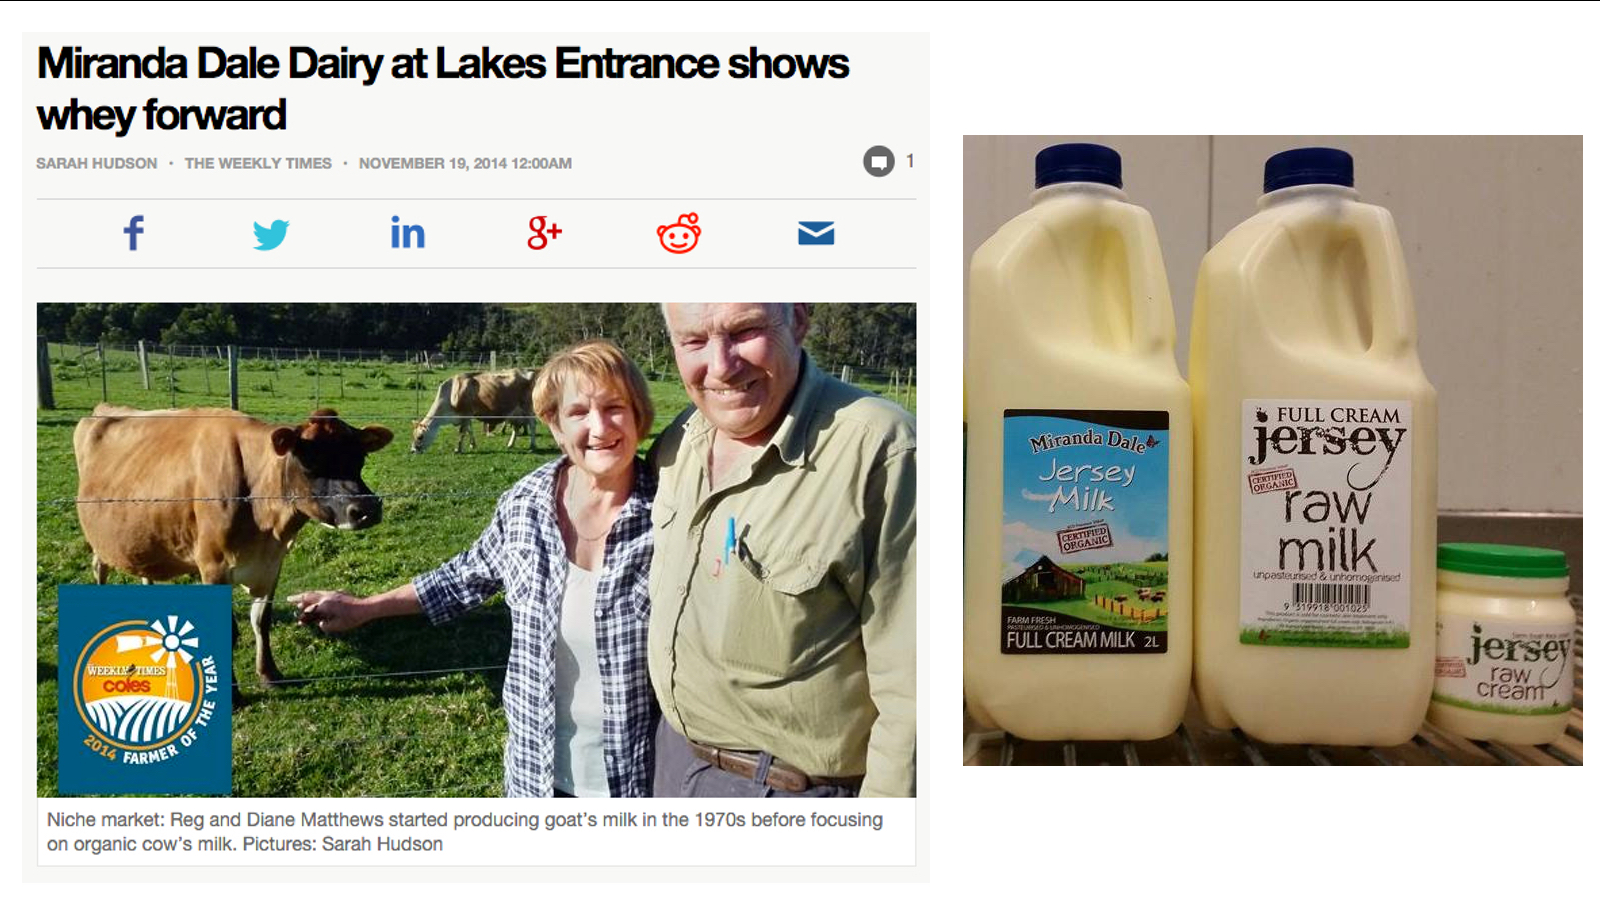 An article about Miranda Dale raw milk